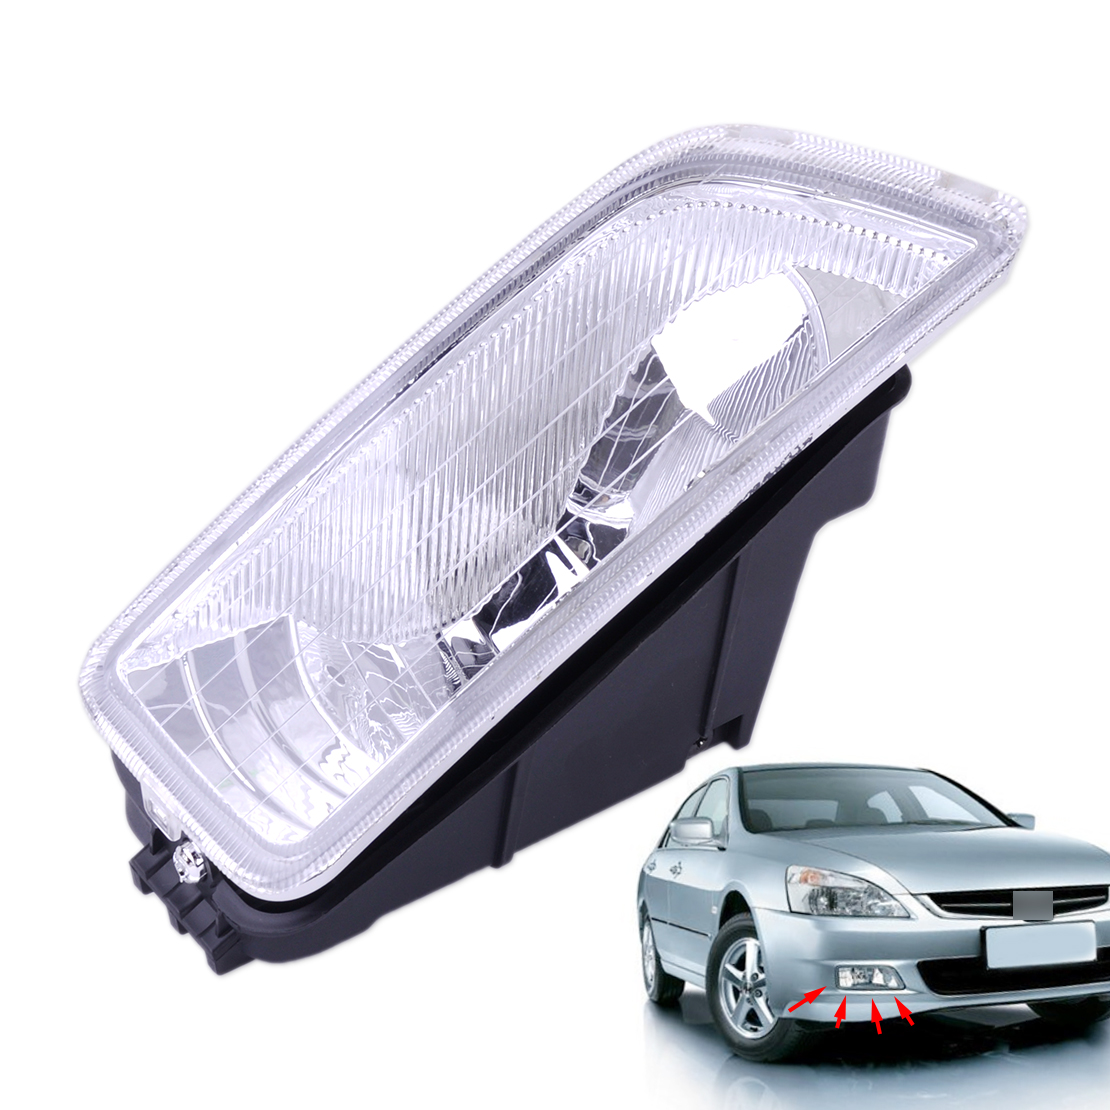 CITALL 33901-SDA-H01 Front Right Side Fog Light Lamp Cover Shell Fit for Honda Accord 2003 2004 2005 2006 2007